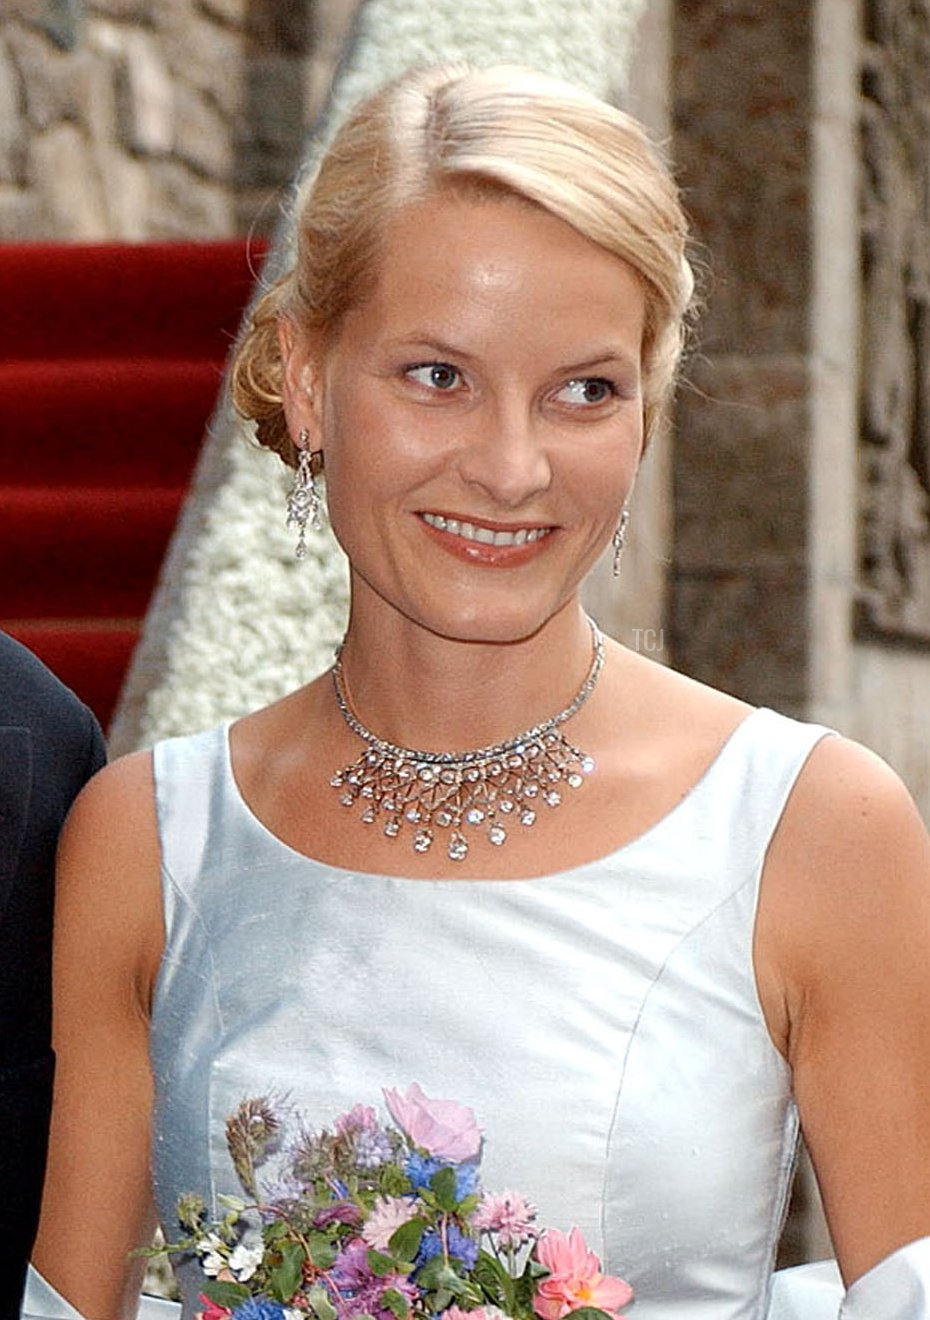 Crown Prince Haakon of Norway and his fiancee Mette-Marit Tjessem Hoiby arrive for a dinner at Akershus Castle in Oslo August 24, 2001 on the eve of their wedding